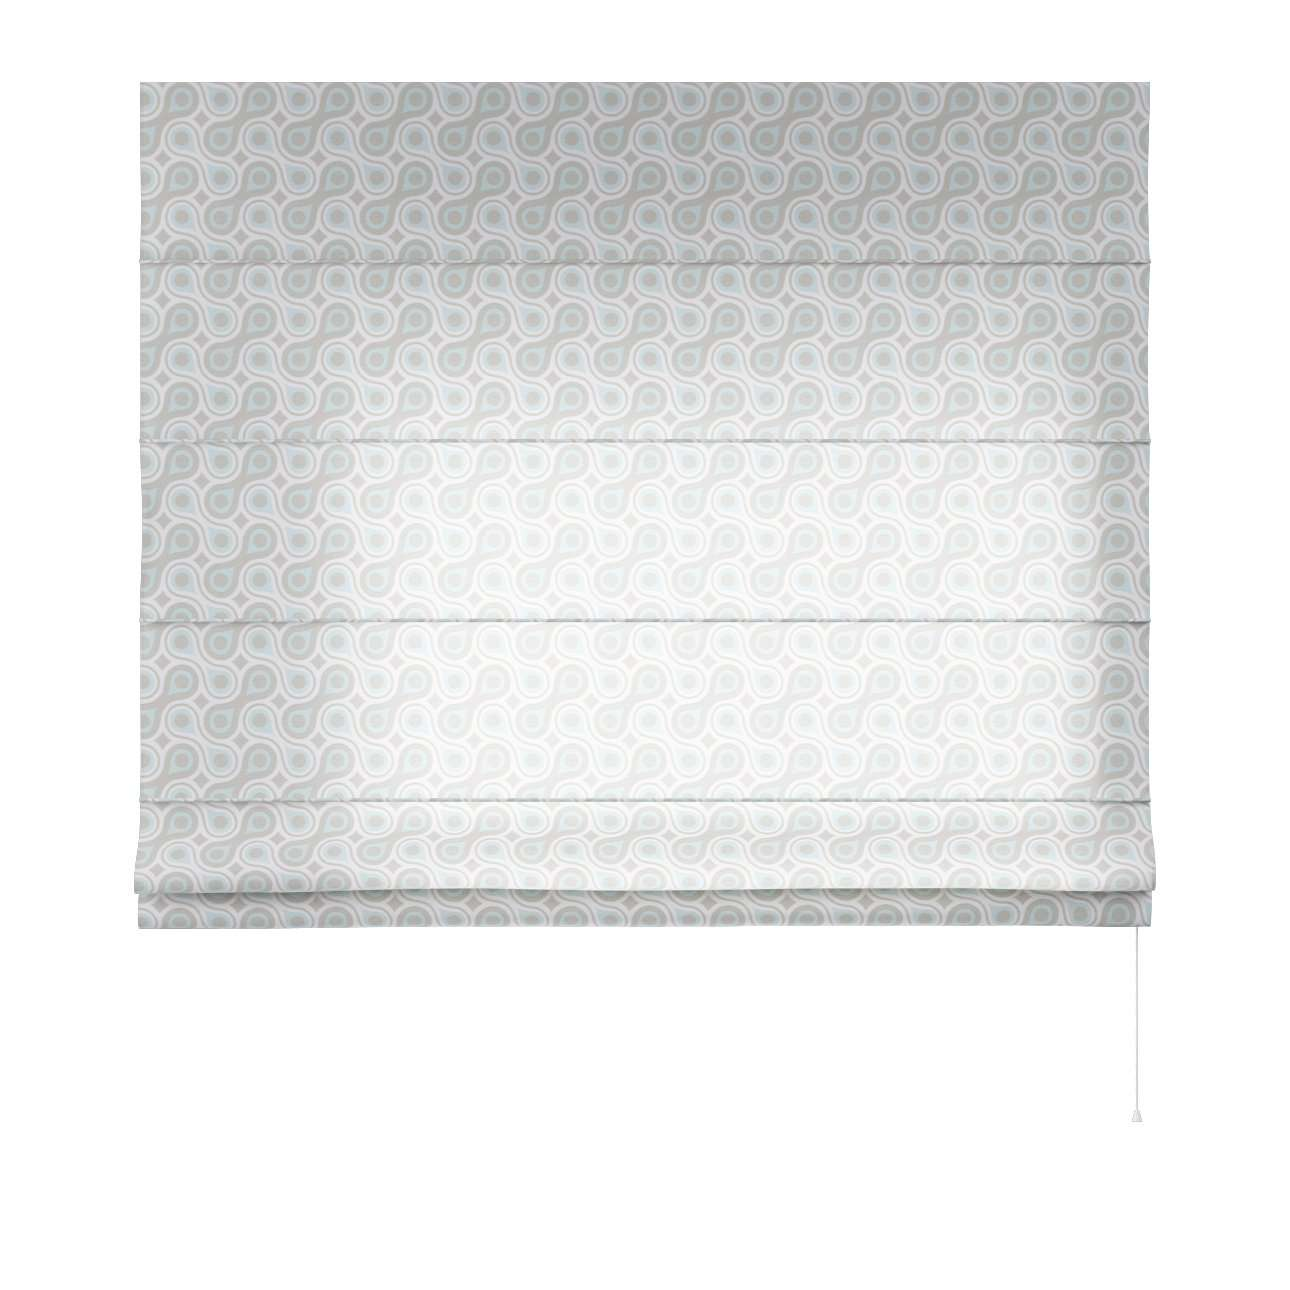 Capri roman blind in collection Flowers, fabric: 311-13